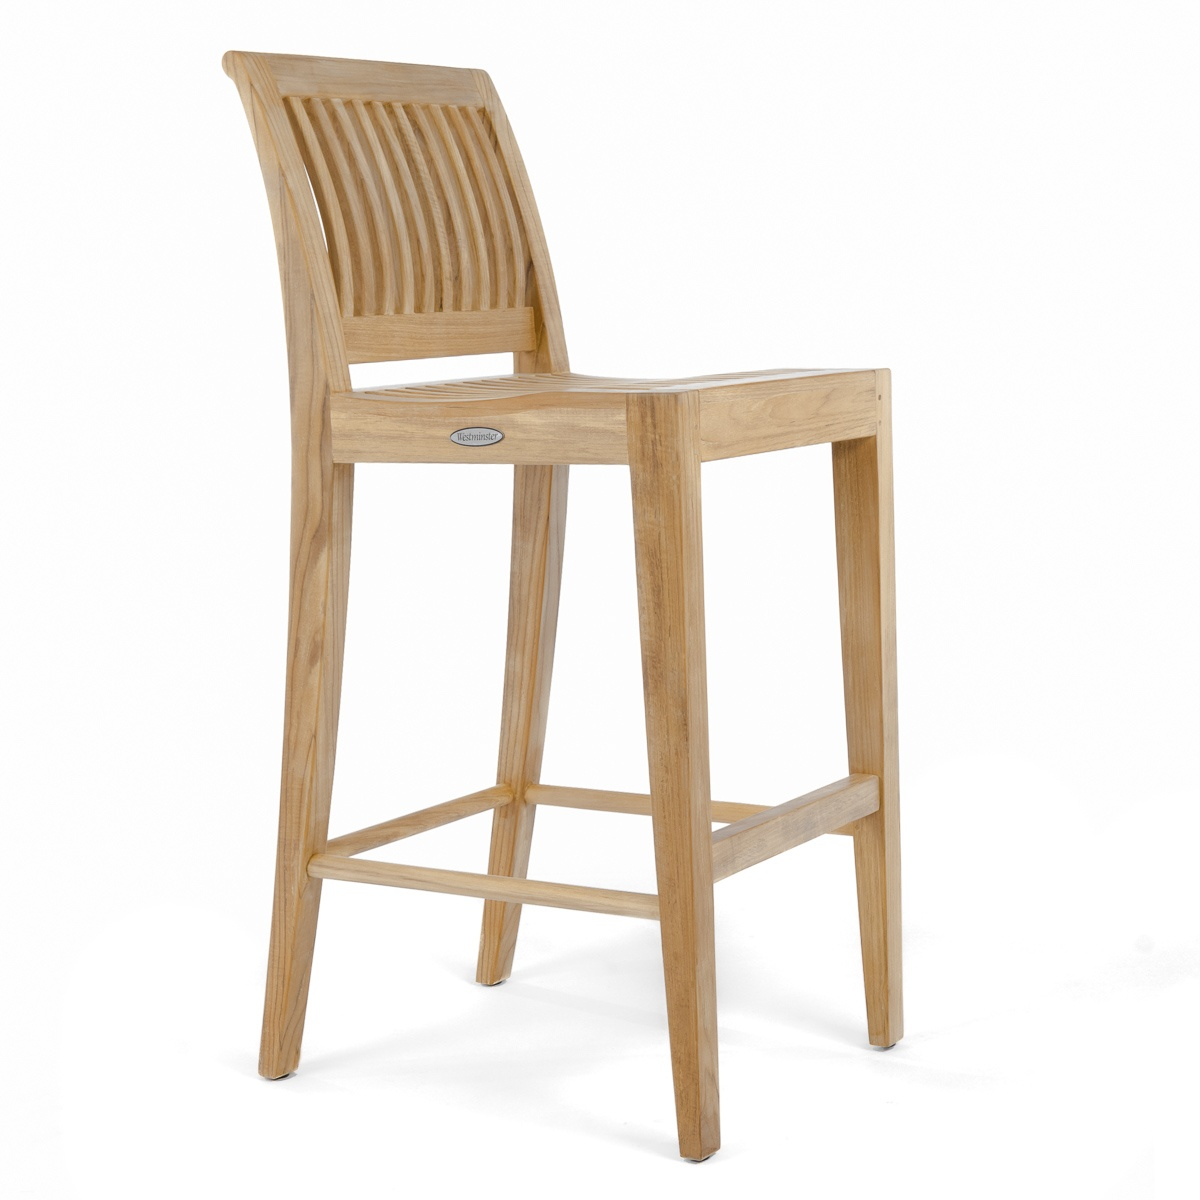 Laguna Teak Outdoor Bar Stool Westminster Teak Outdoor  : all teak modern bar stools from www.westminsterteak.com size 1200 x 1200 jpeg 141kB